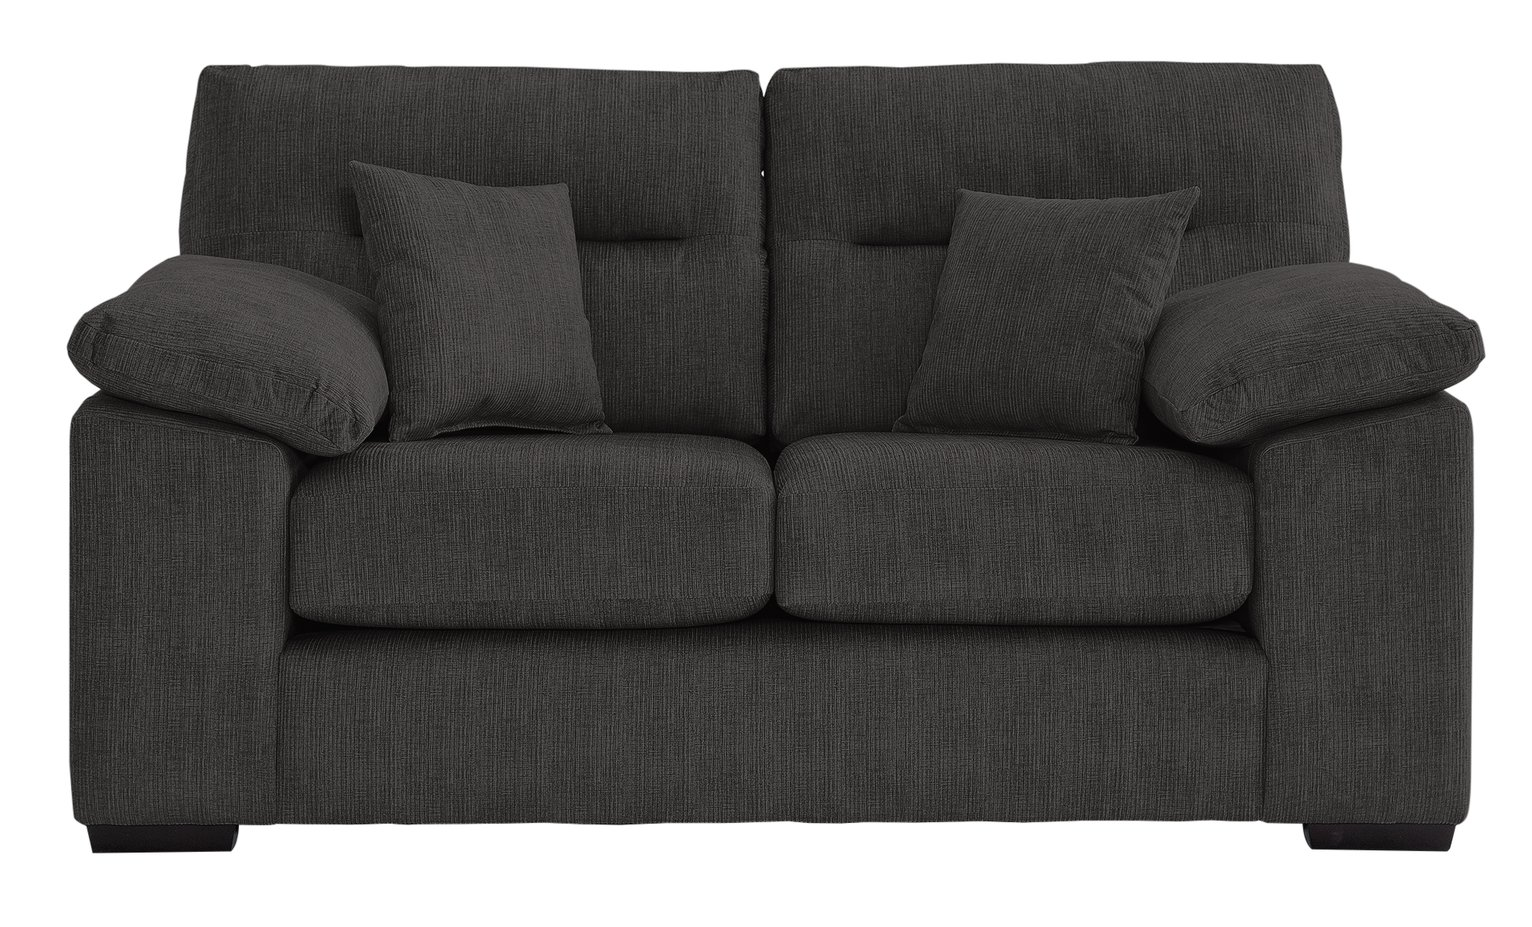 Argos Home Donavan 2 Seater Fabric Sofa - Charcoal